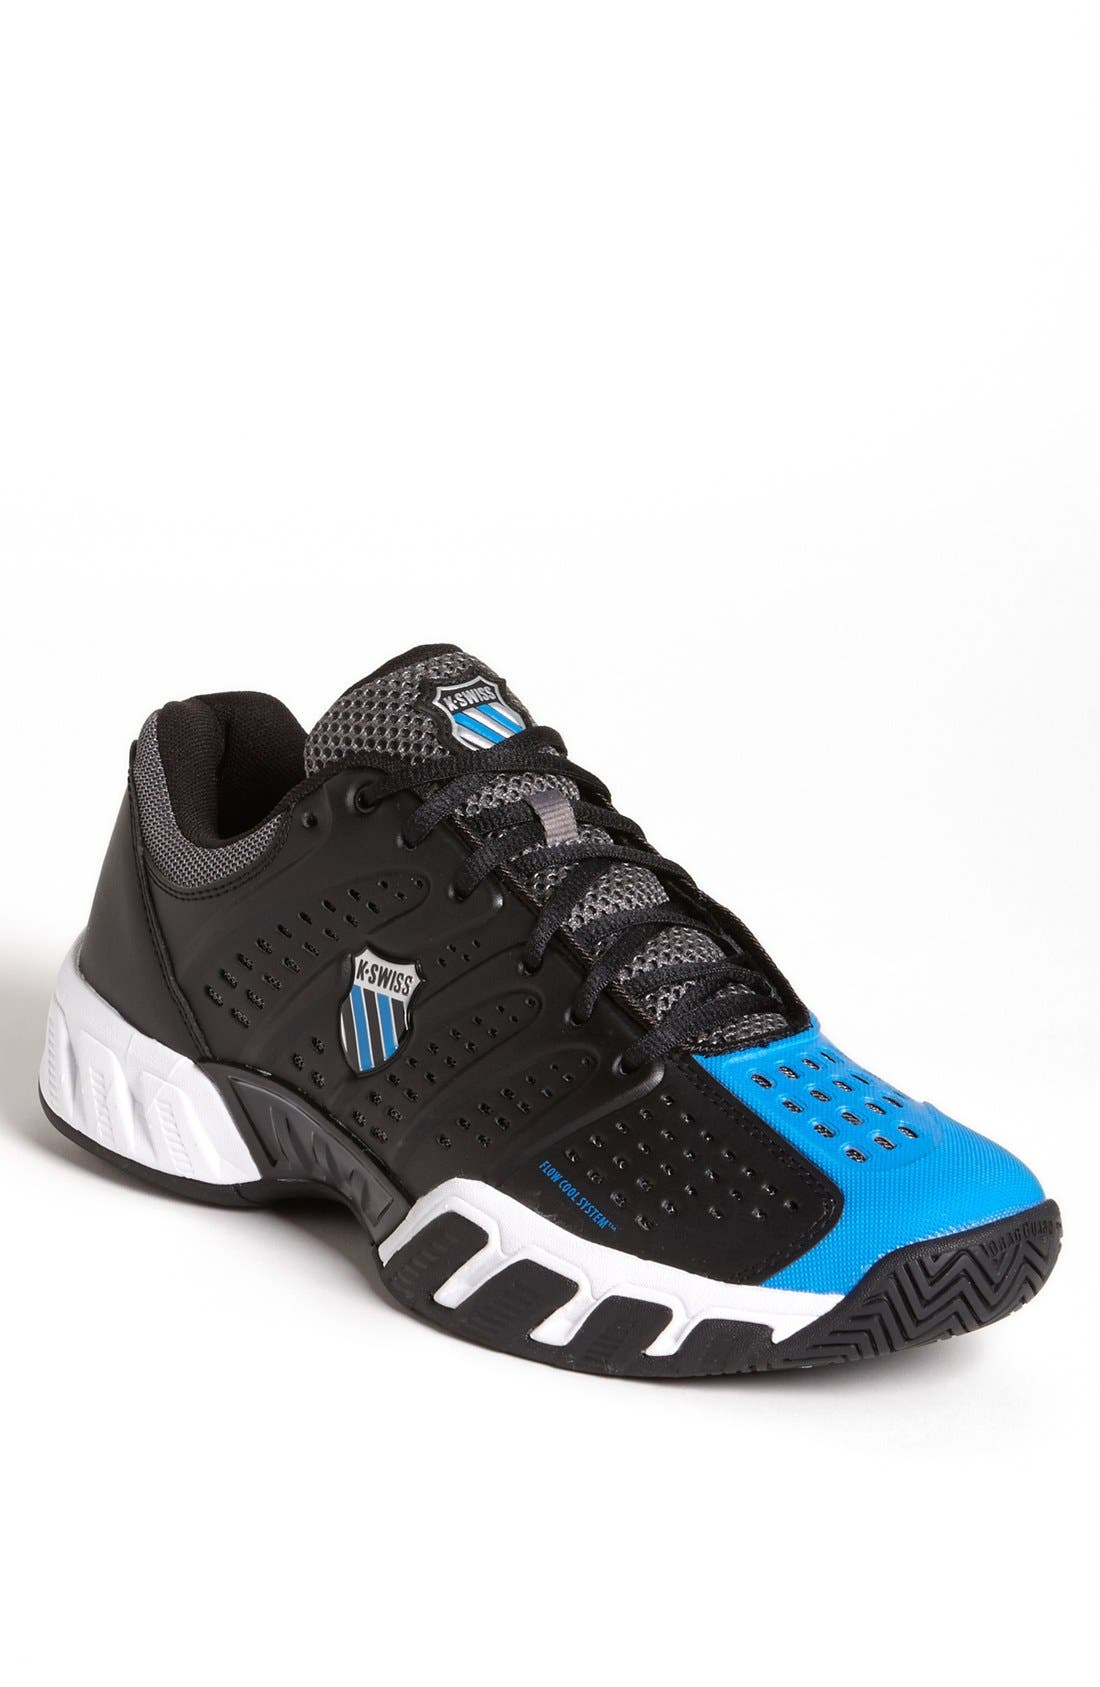 Main Image - K-Swiss 'Big Shot Light' Tennis Shoe (Men)